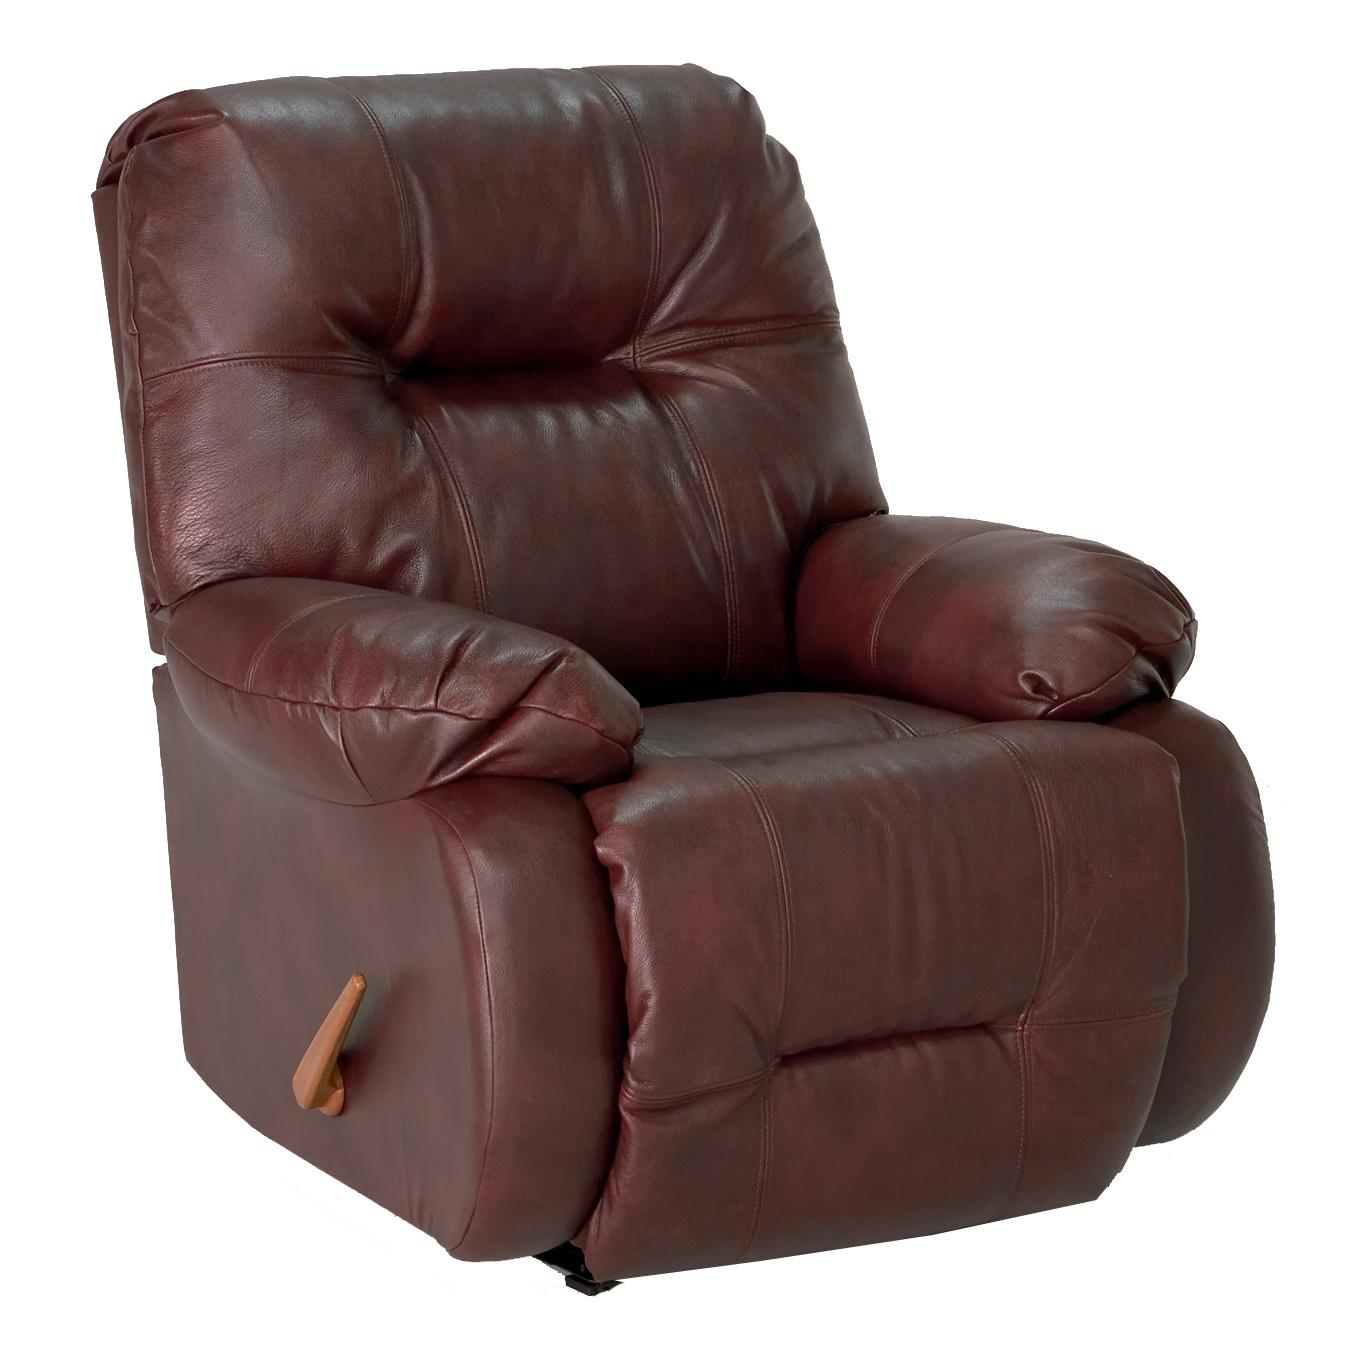 Best Home Furnishings Recliners - Medium Brinley Swivel Glide Recliner - Item Number: 8MW85LV